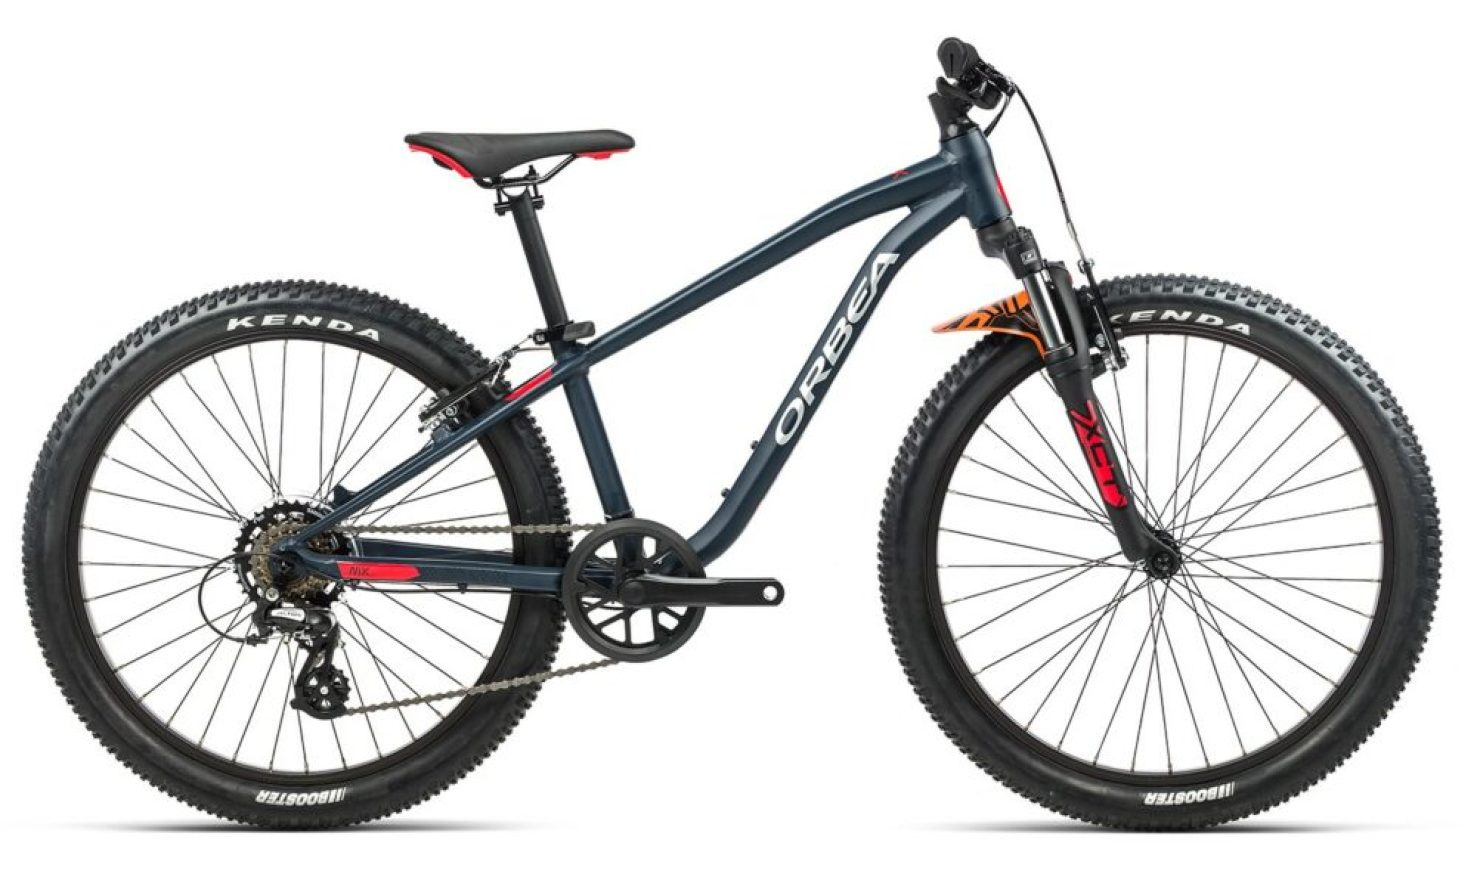 Orbea MX24 XC 2021 is a great entry level mountain bike for an 8 year old